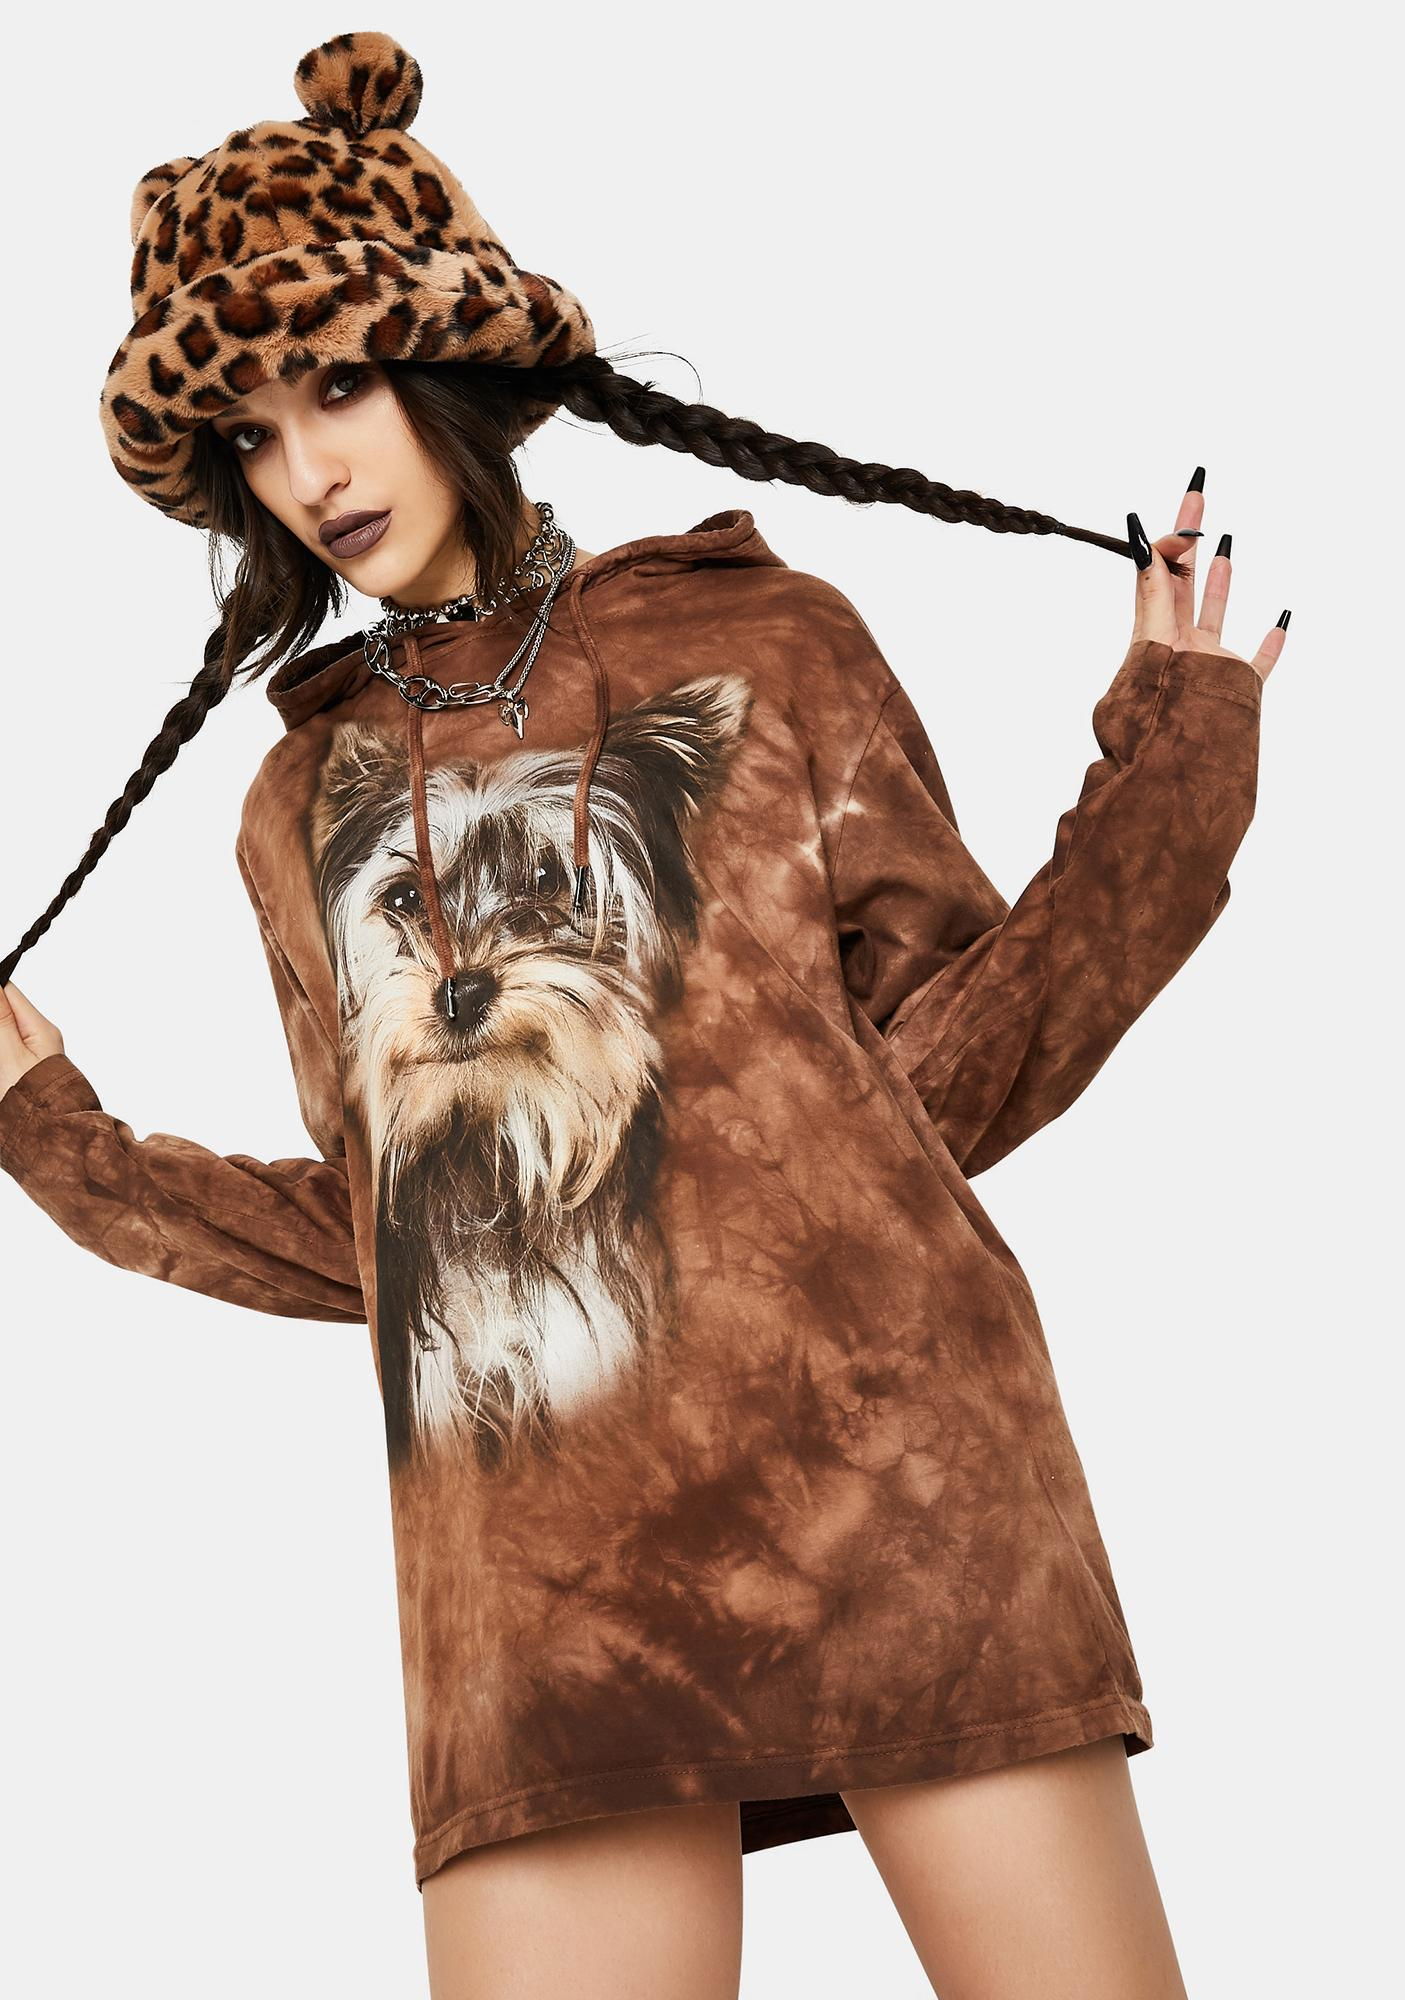 The Mountain Smiling Yorkie Portrait Hoodie